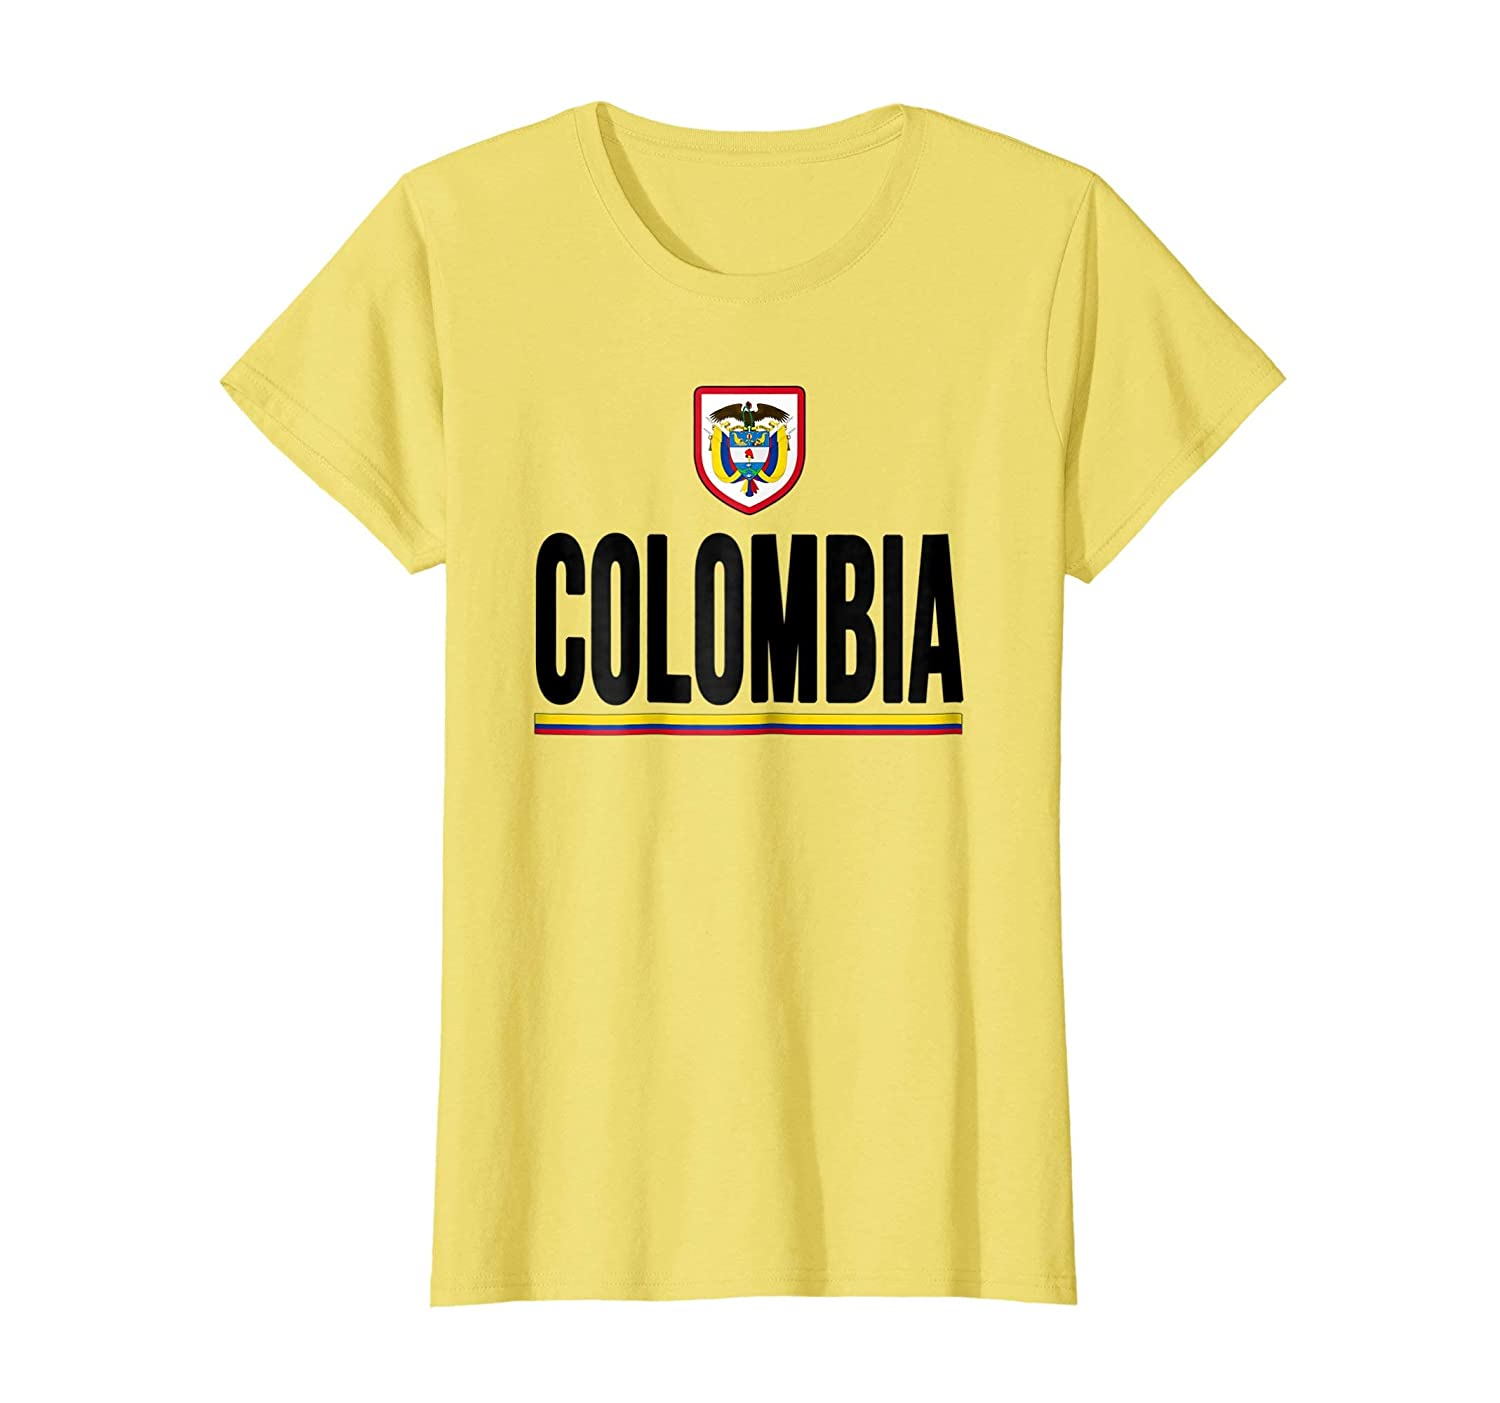 Amazon.com: Colombia T-shirt Colombian Flag Soccer Futbol Fan Jersey: Clothing